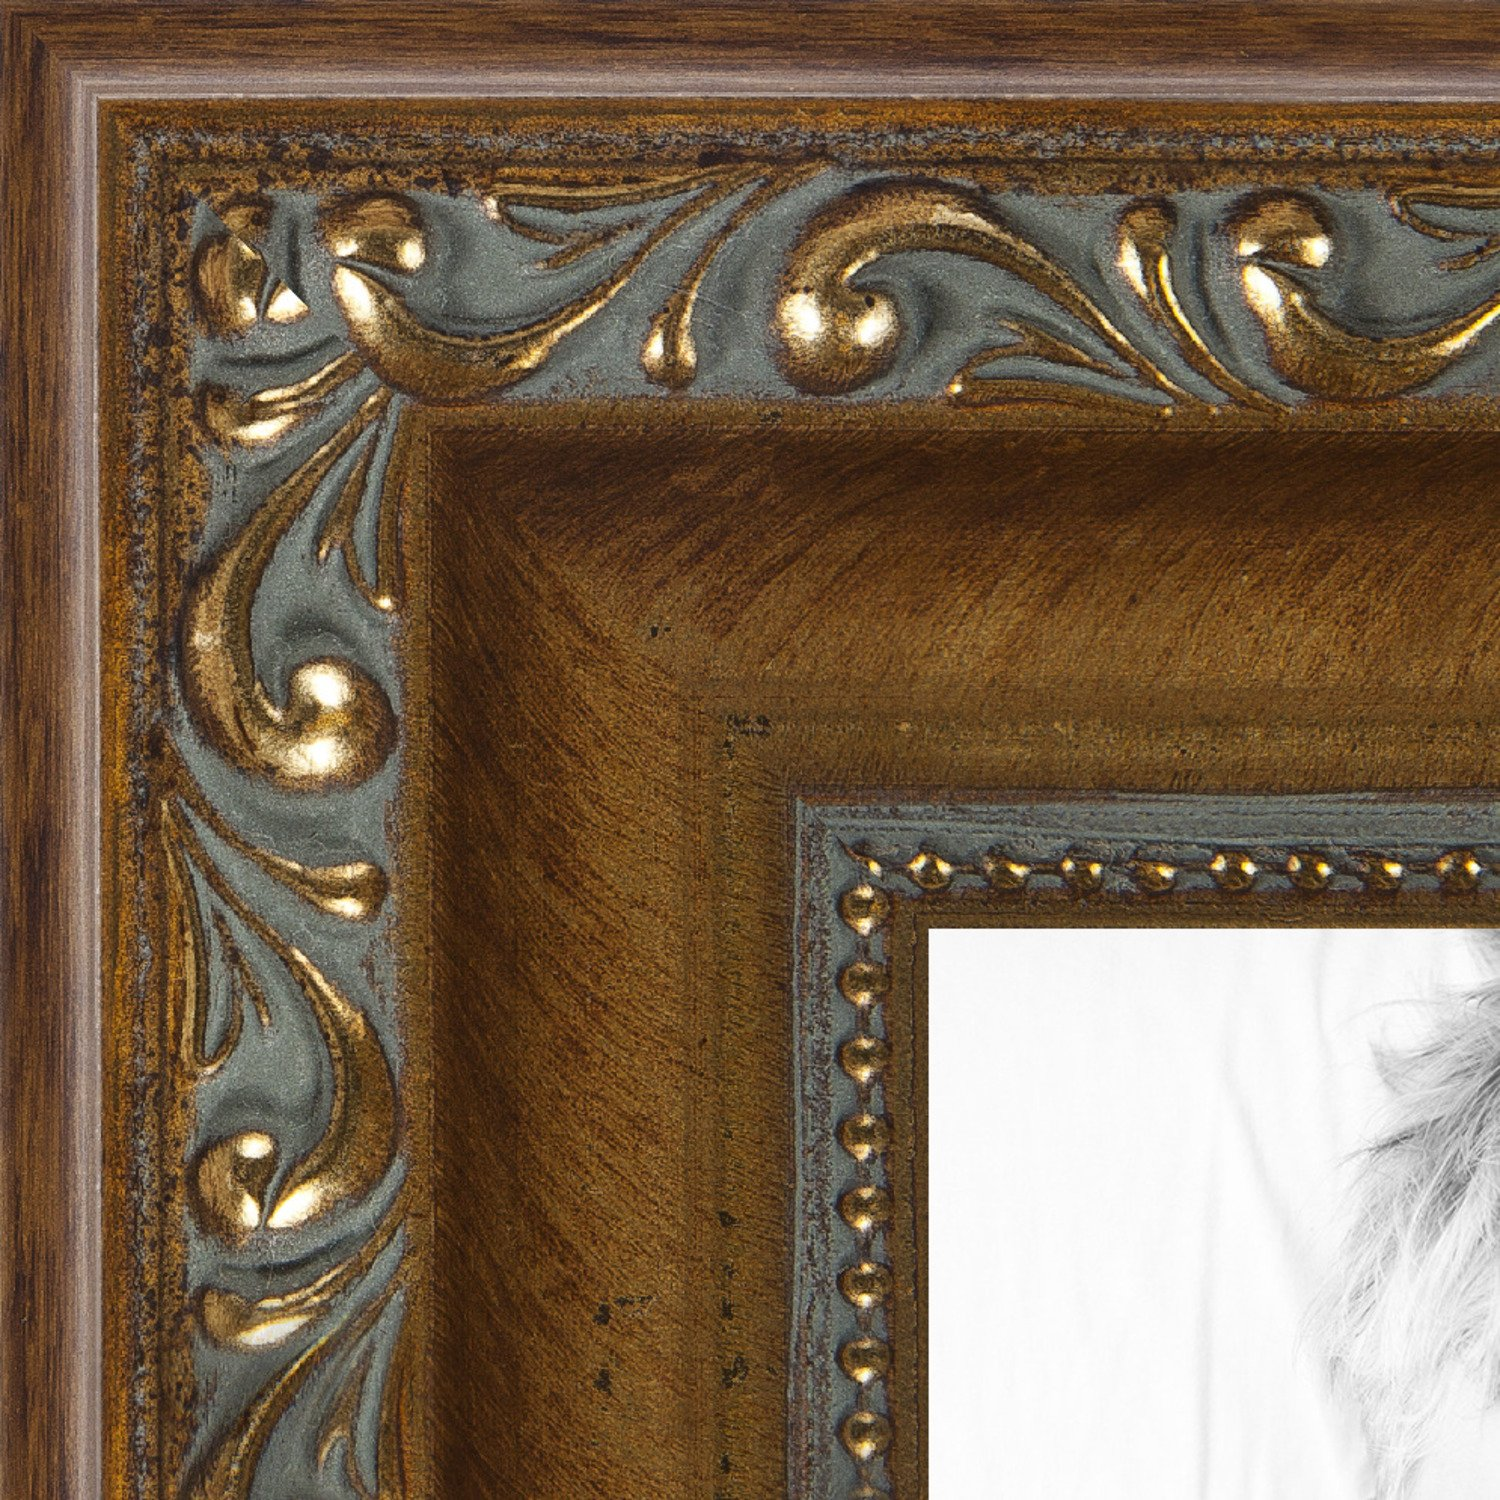 ArtToFrames 12x16 inch Dark Gold with Beads Wood Picture Frame, WOMD6301-12x16 by ArtToFrames